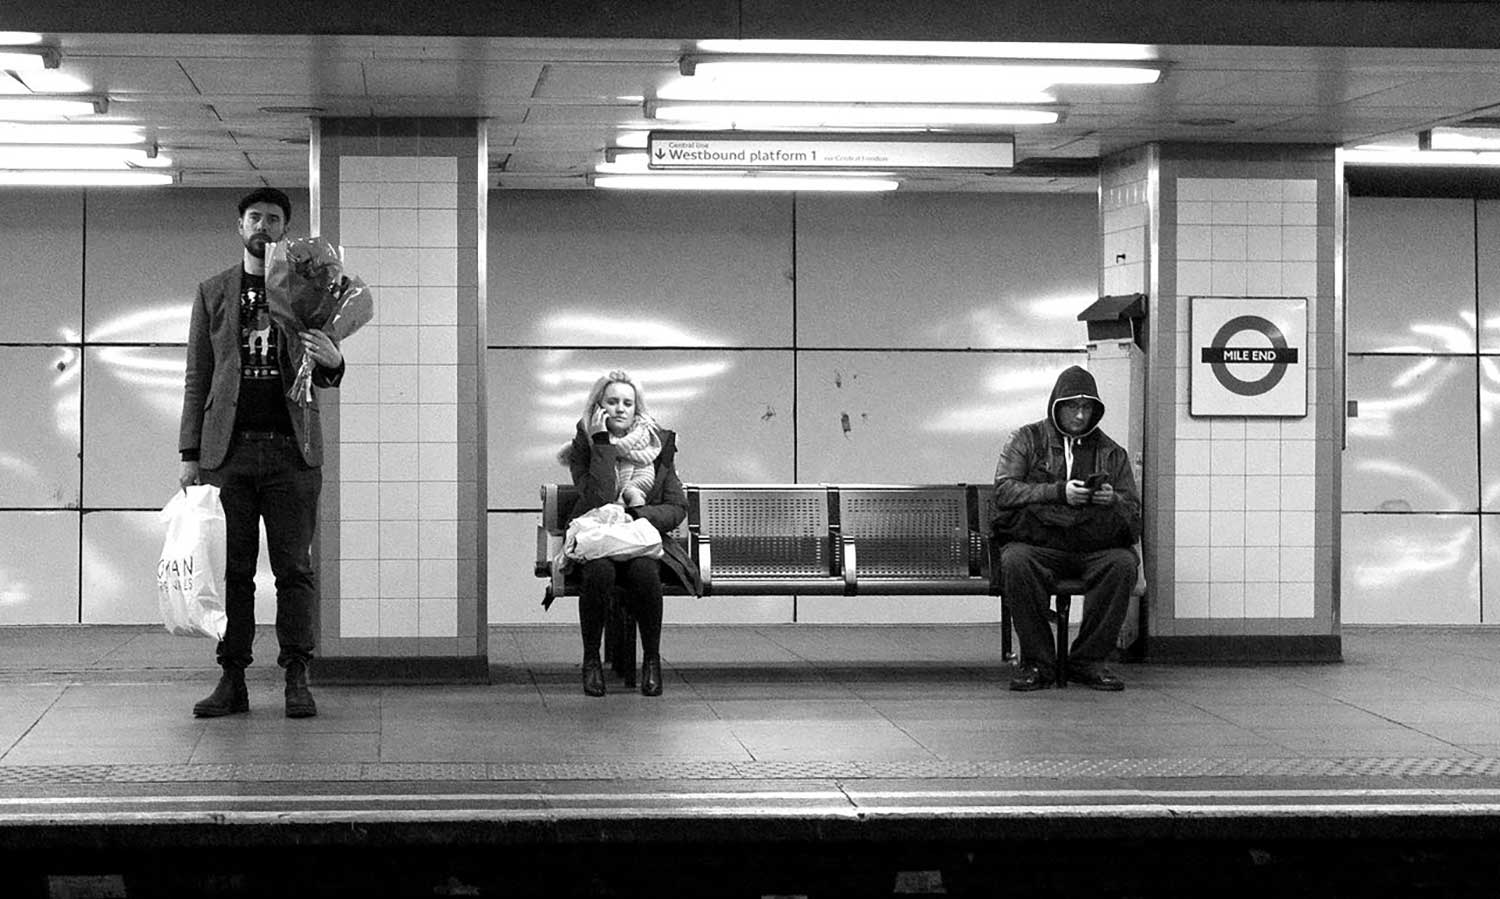 Three passengers on Mile End station, one man standing with a bunch of flowers, one woman sitting with bag on lap and another man in hooded top looking at his mobile phone.